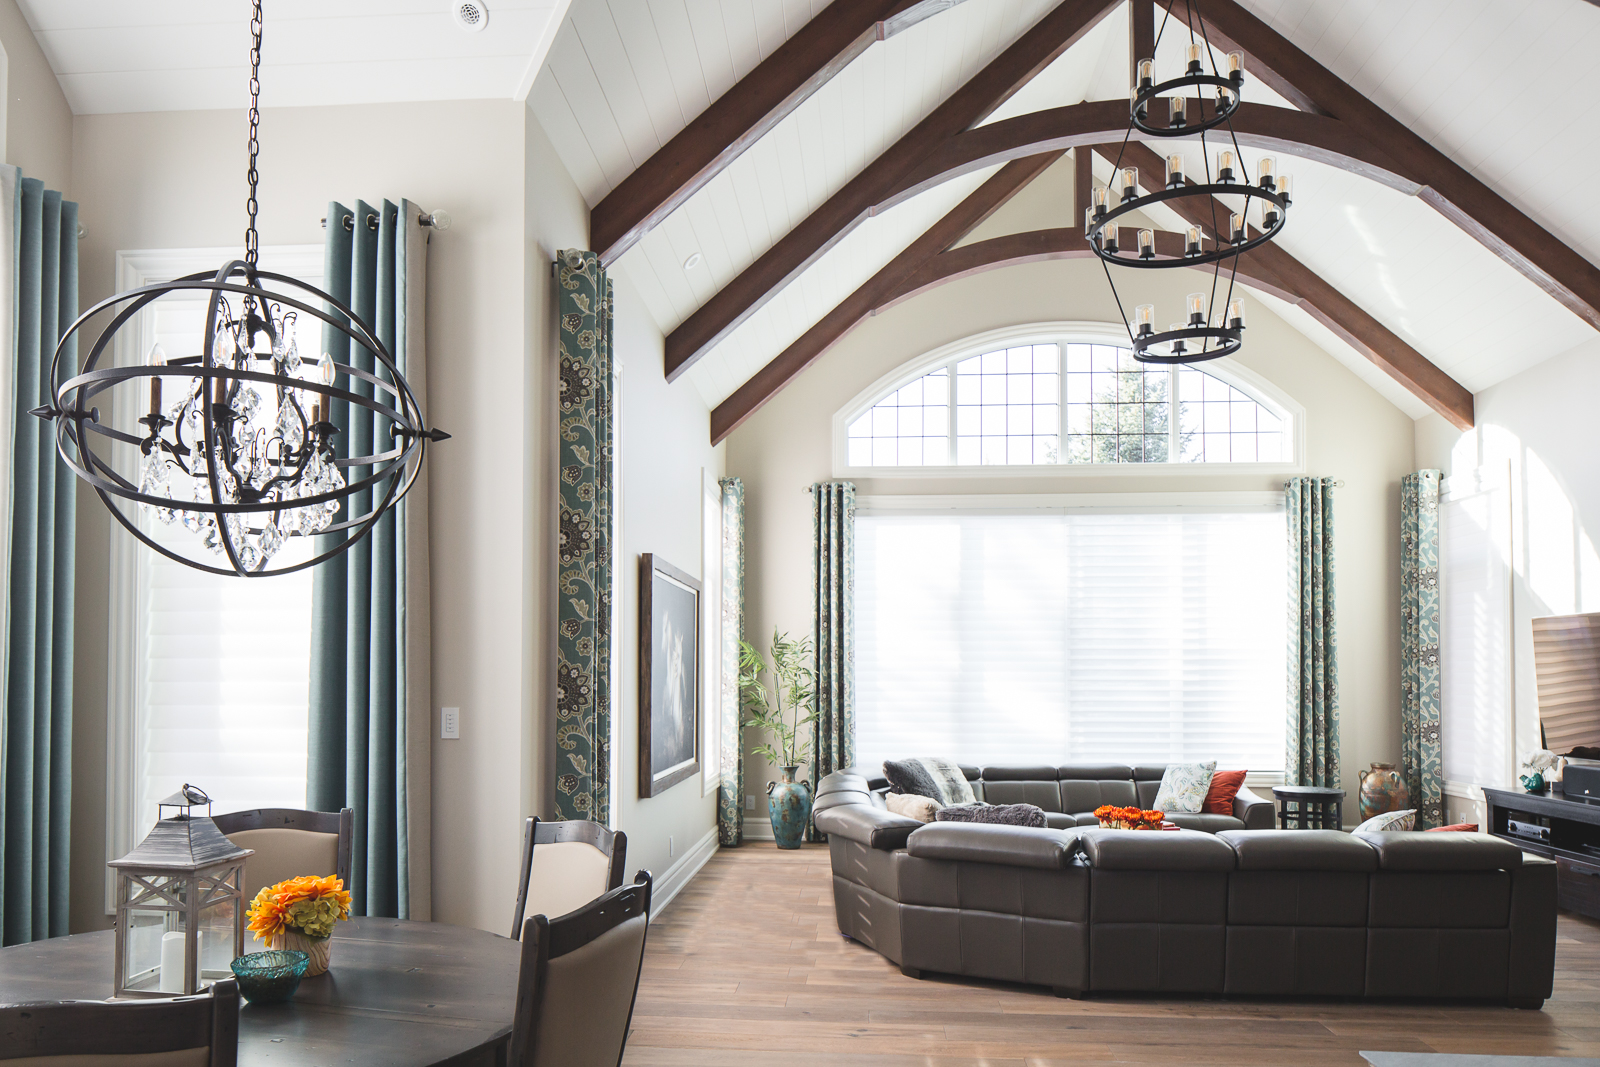 Wood beams in vaulted ceiling